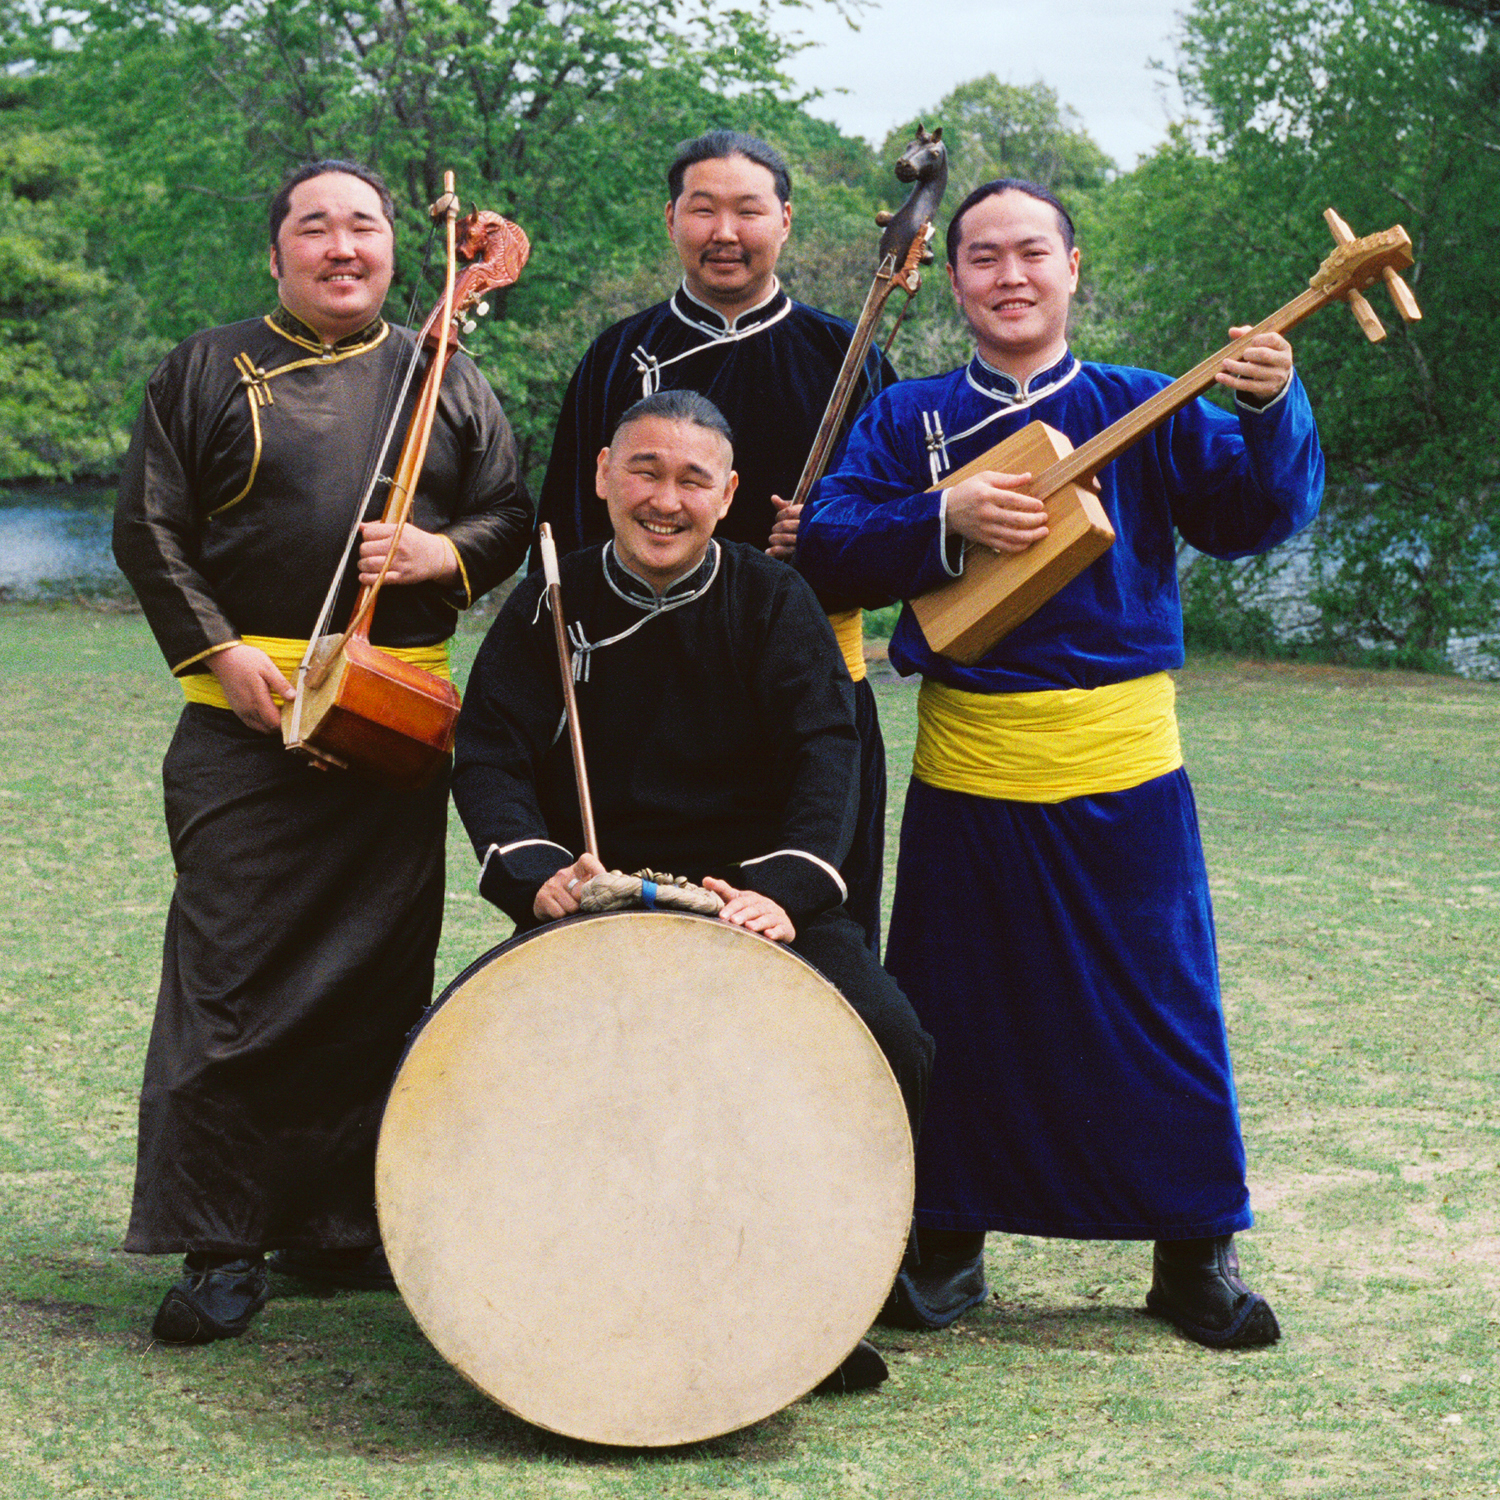 Tuvan throat singing - Wikipedia